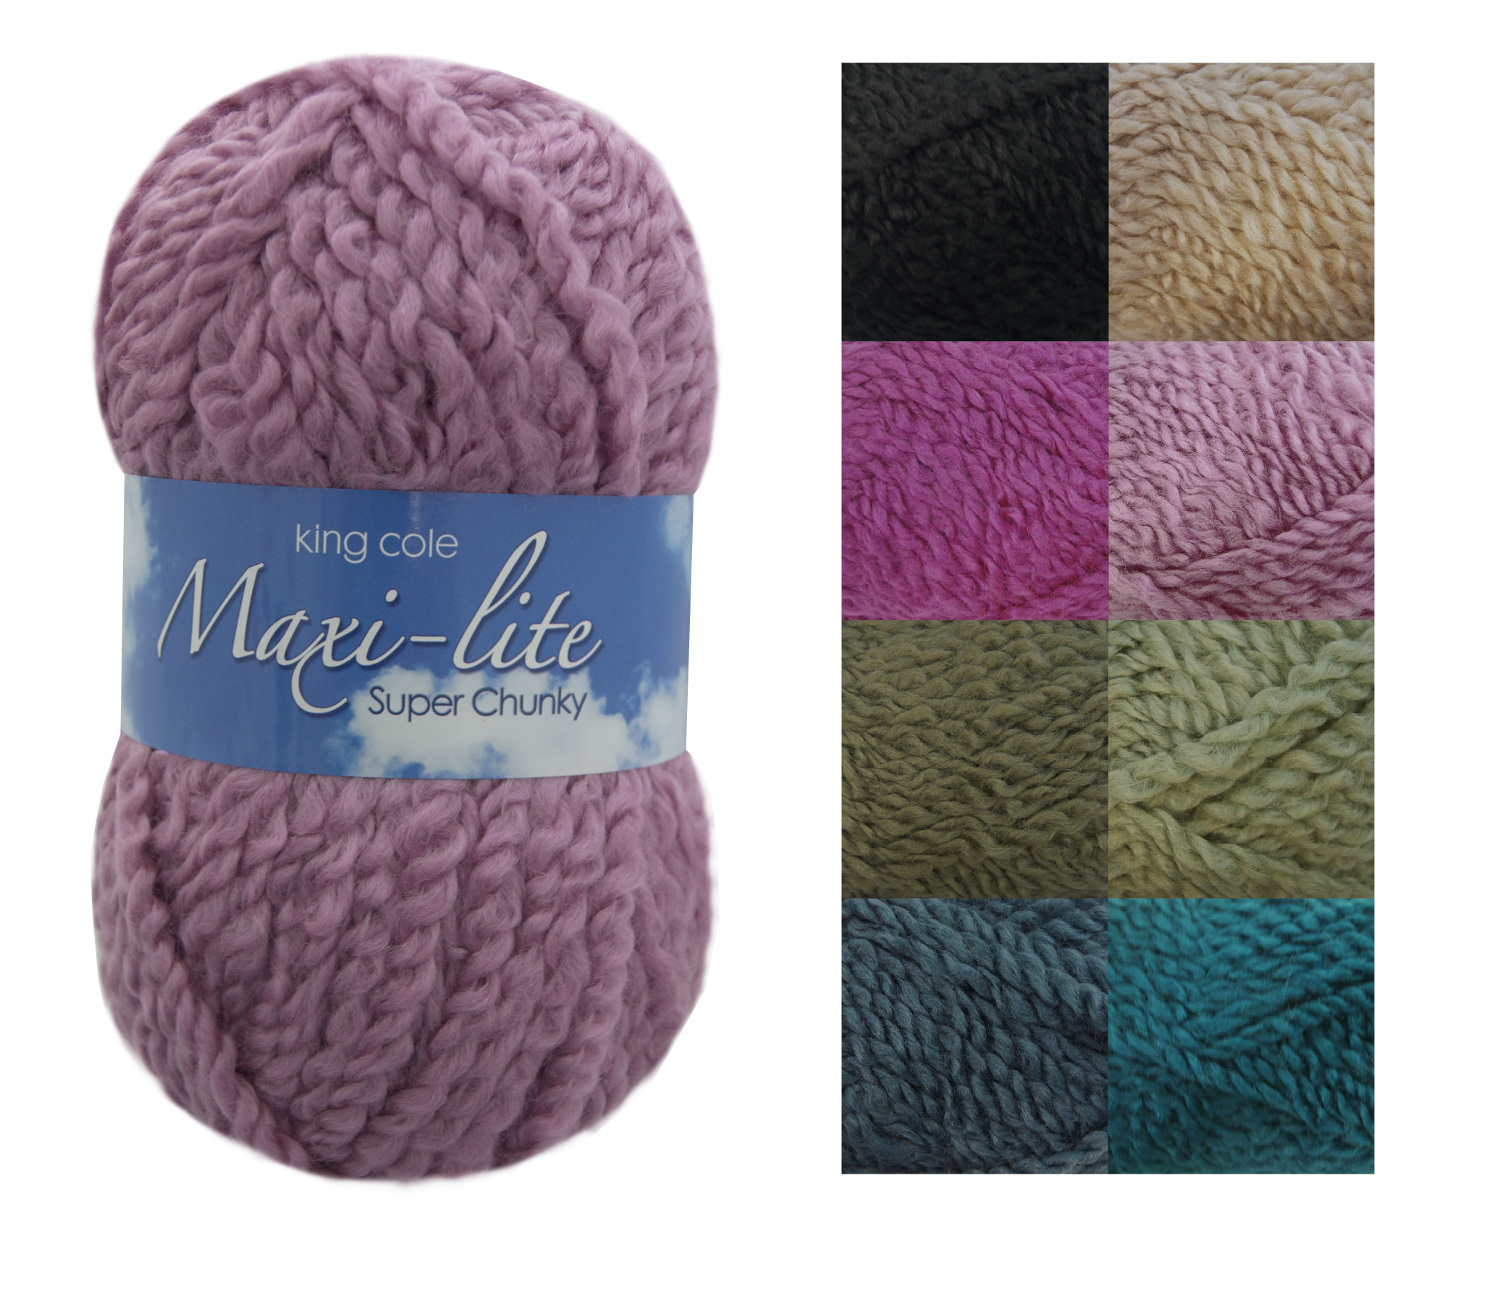 ... 100g Ball Maxi Lite Chunky Knitting Yarn Super Soft Acrylic Wool Knit